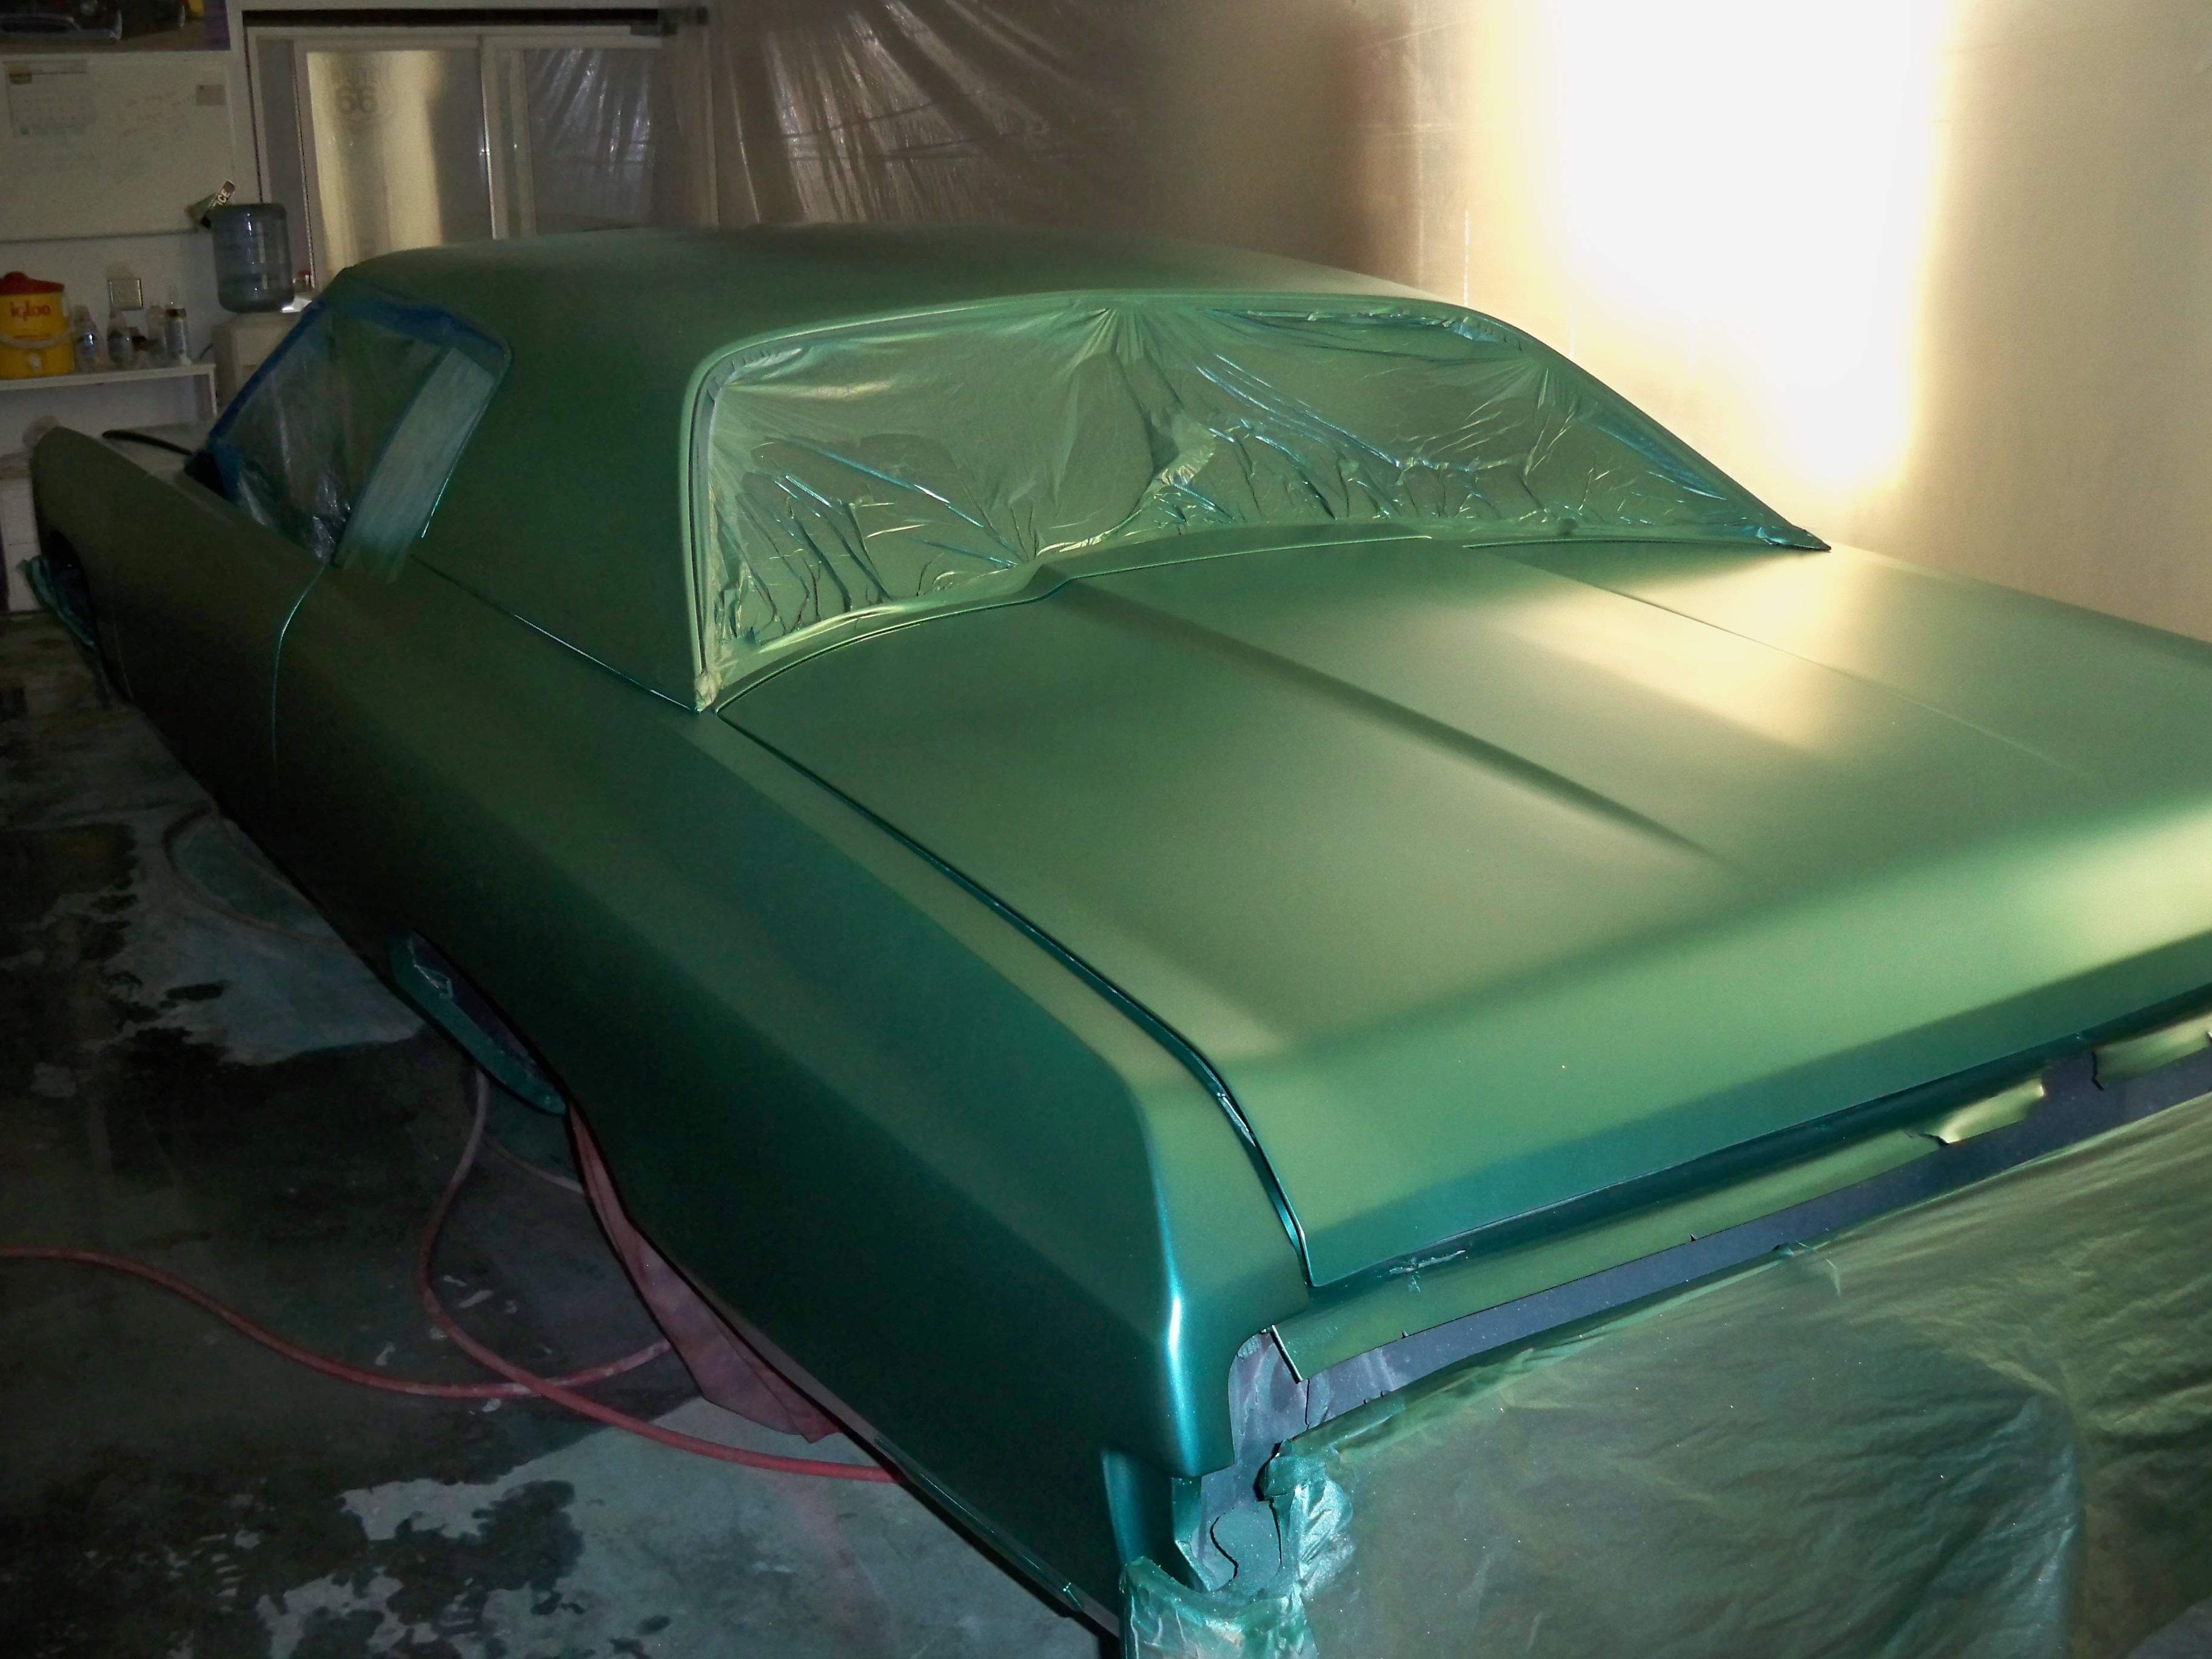 Another DACAPRICE 1972 Chevrolet Impala post... - 11119903